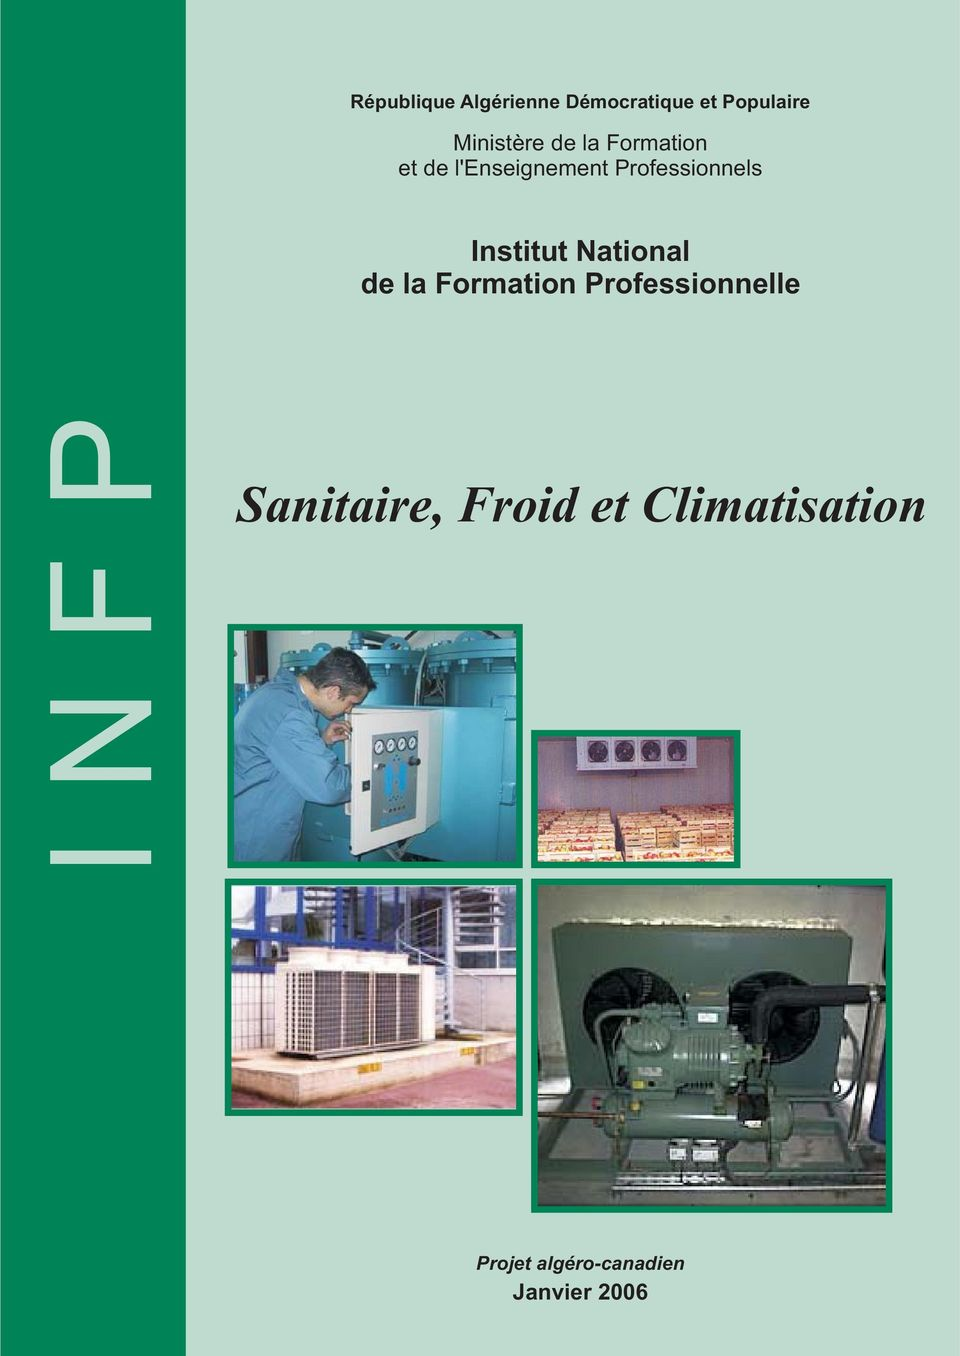 Institut National de la Formation Professionnelle INFP